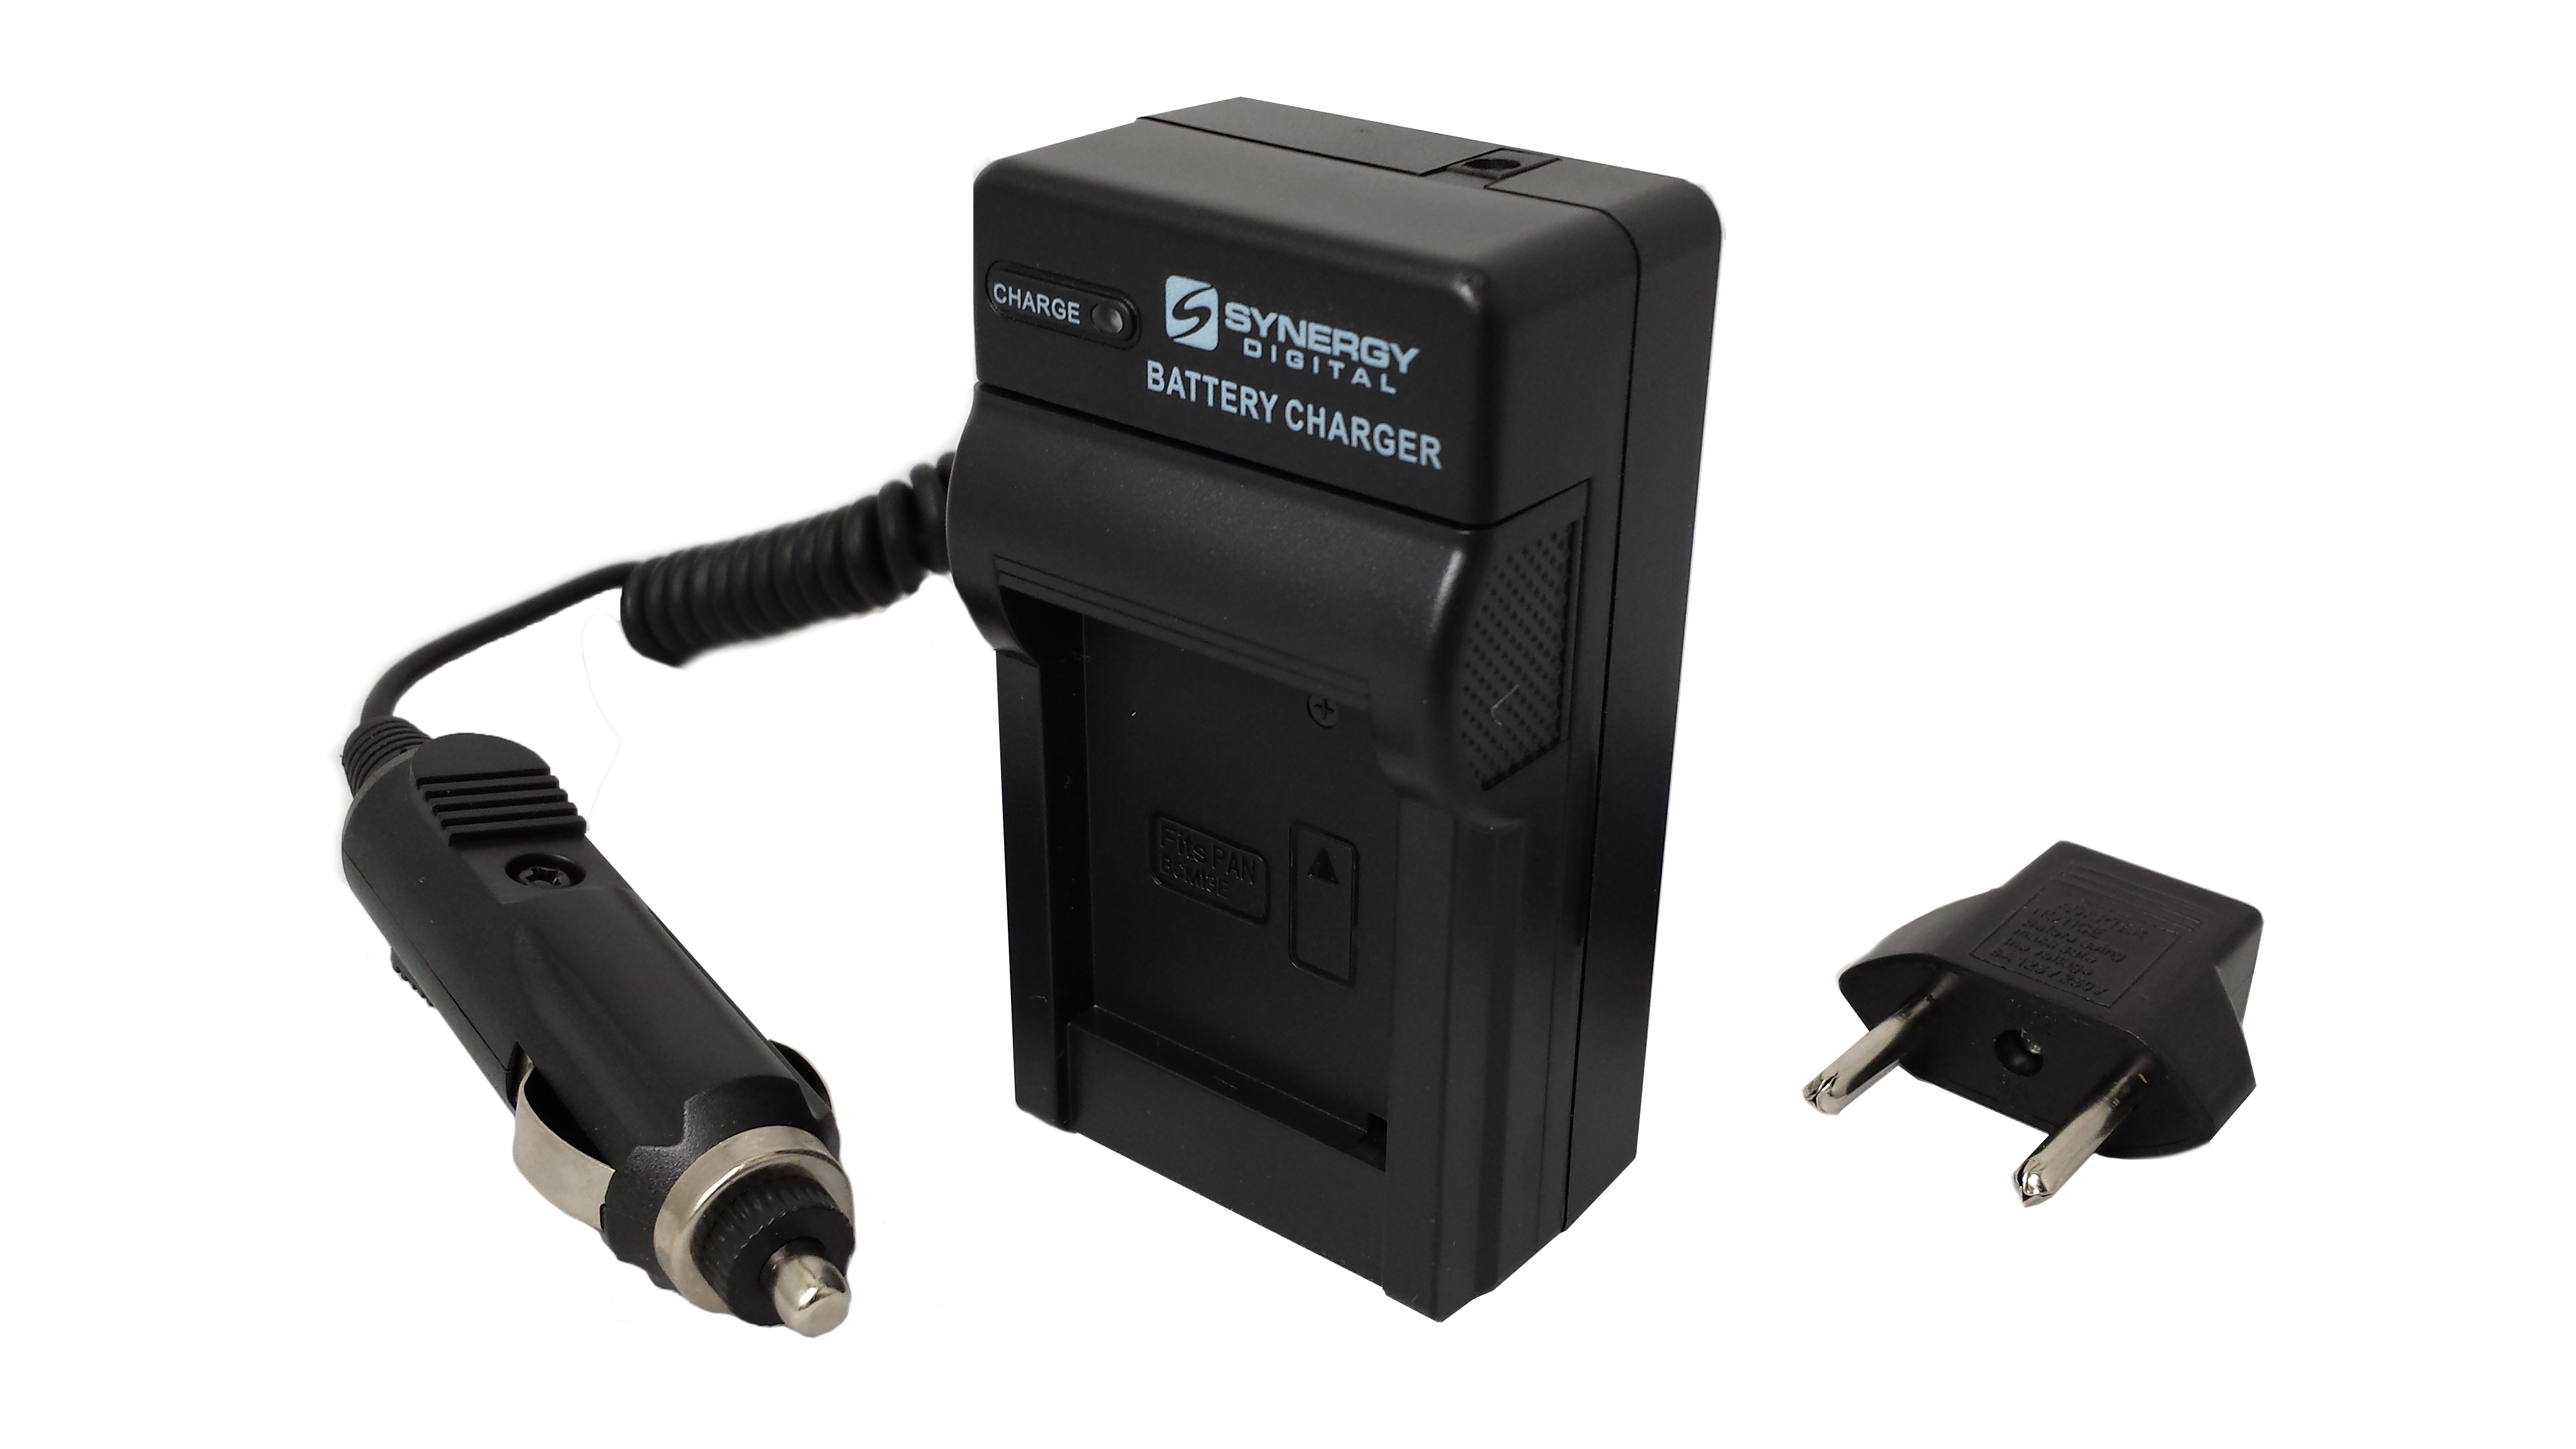 Synergy Digital Sony CCD-TRV930 Camcorder Battery Charger (110/220v with Car & EU adapters) - Replacement Charger for Sony NP-F550, F750, F960, at Sears.com